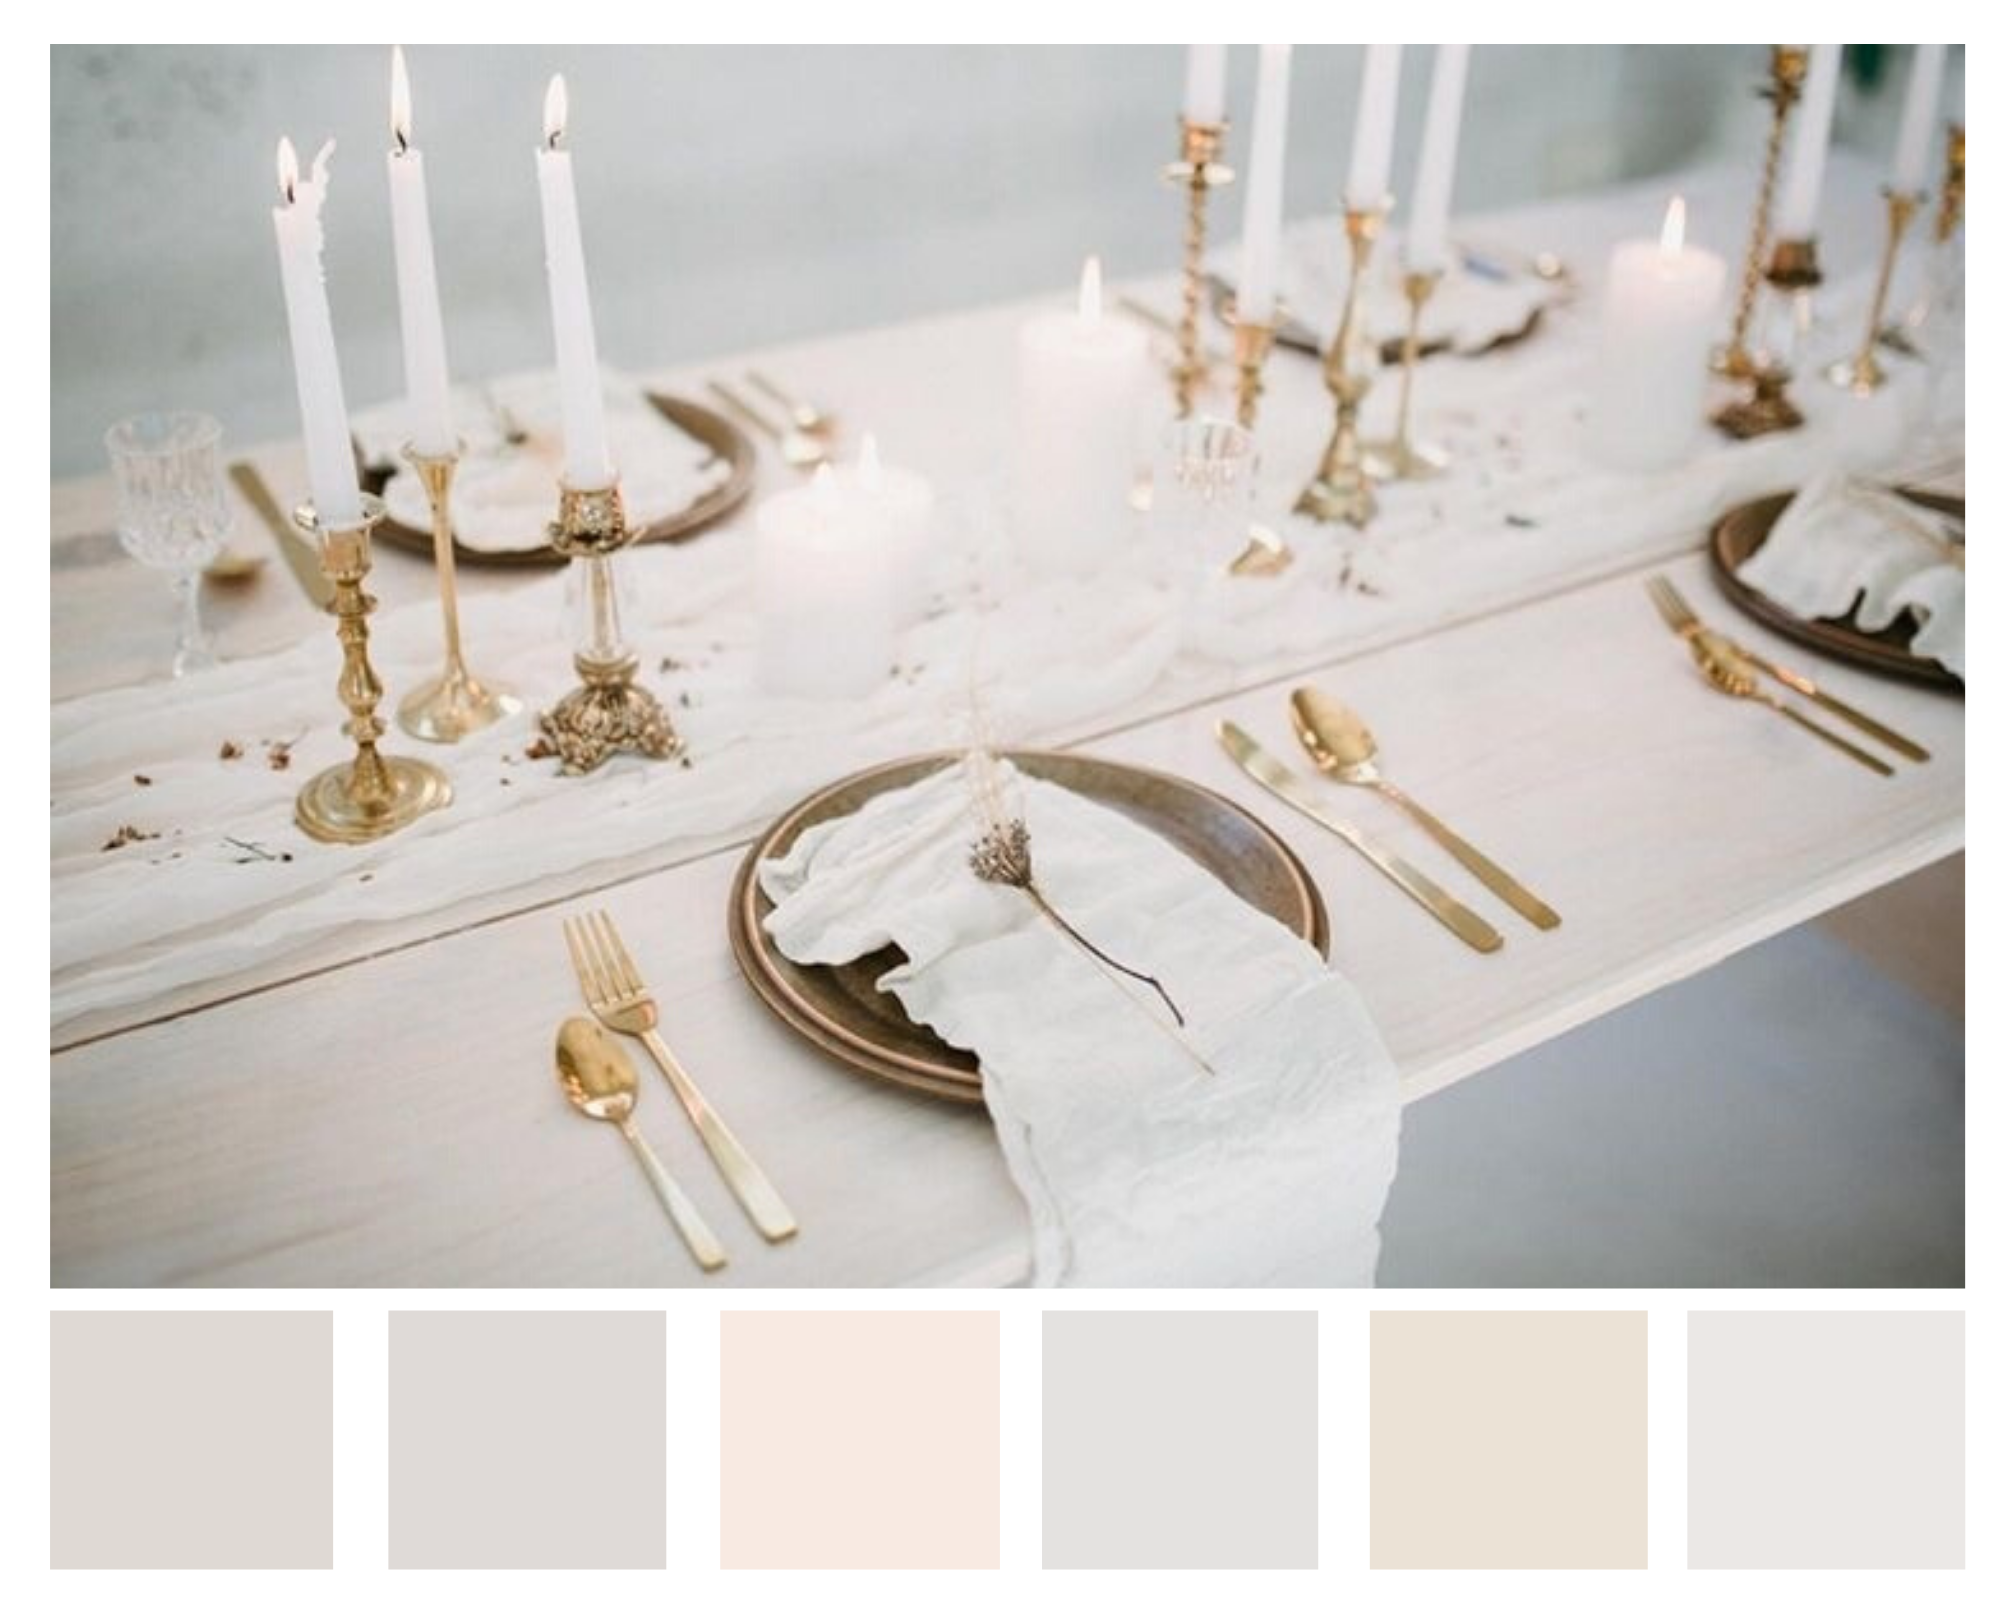 A mix of neutral tones oozes a simple elegance